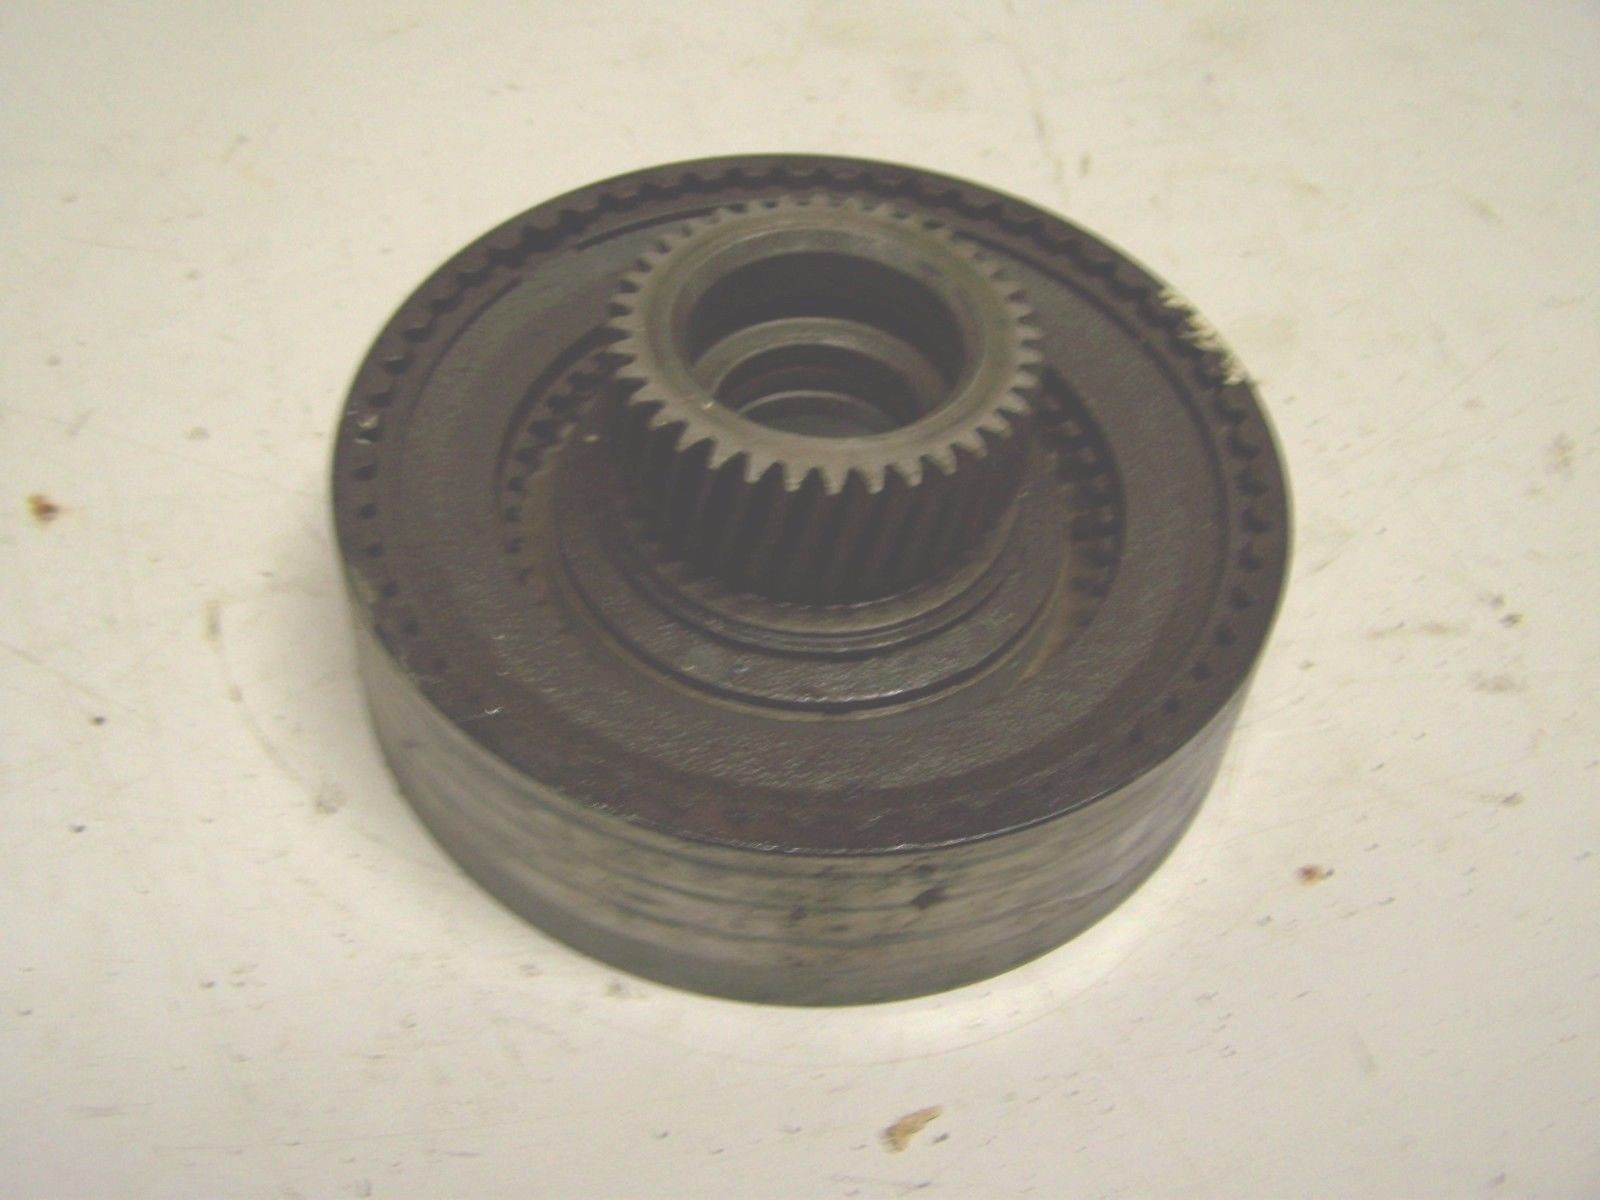 Ford New Holland 2000 Direct Drive Clutch Housing Assembly C0NN7B478G